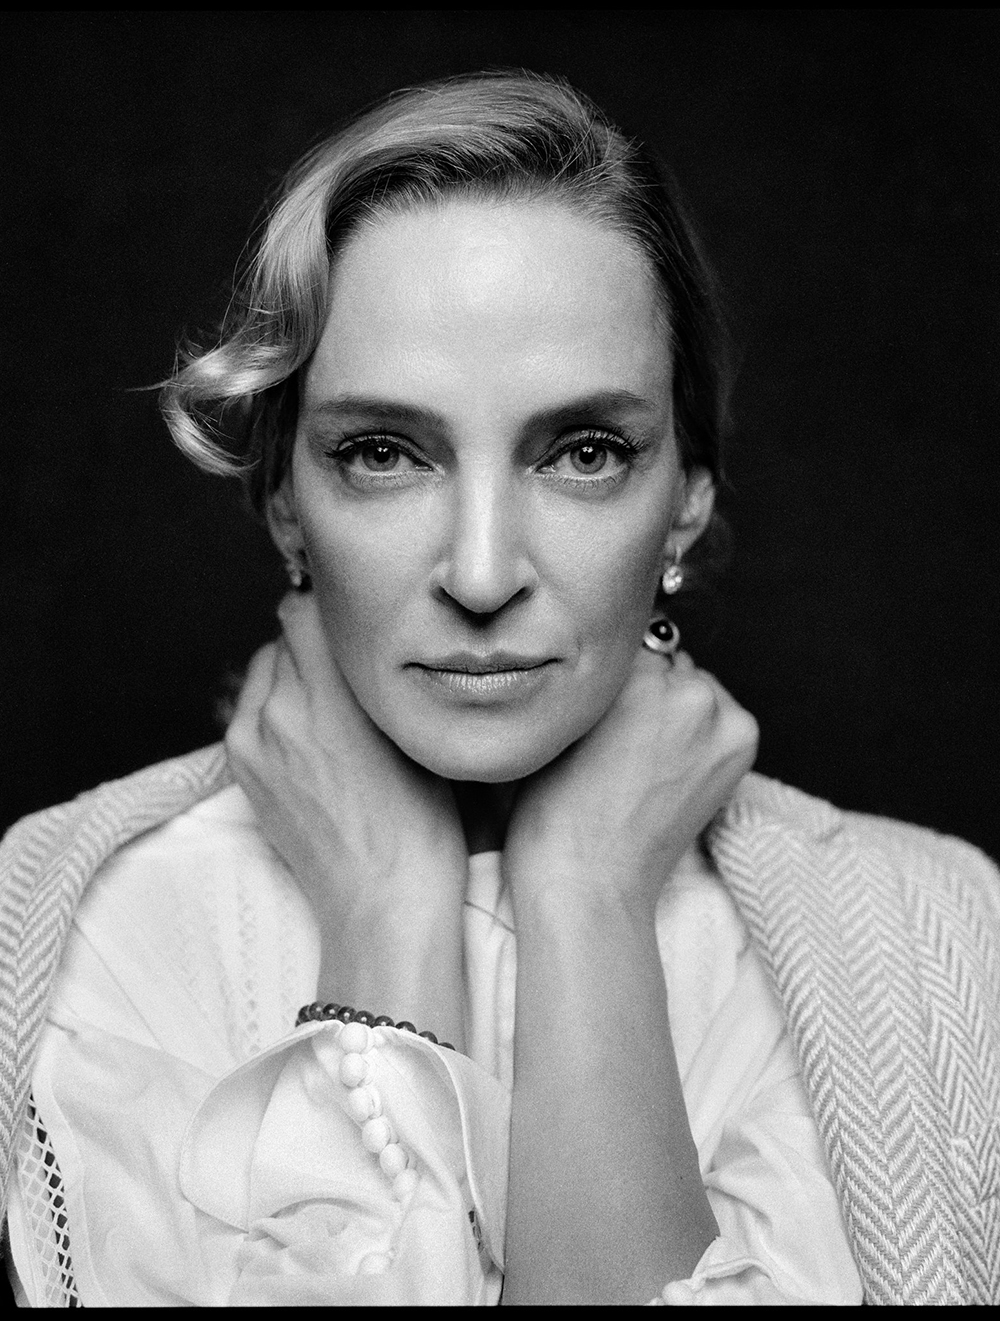 12umathurman1-superJumbo_nytimes.jpg